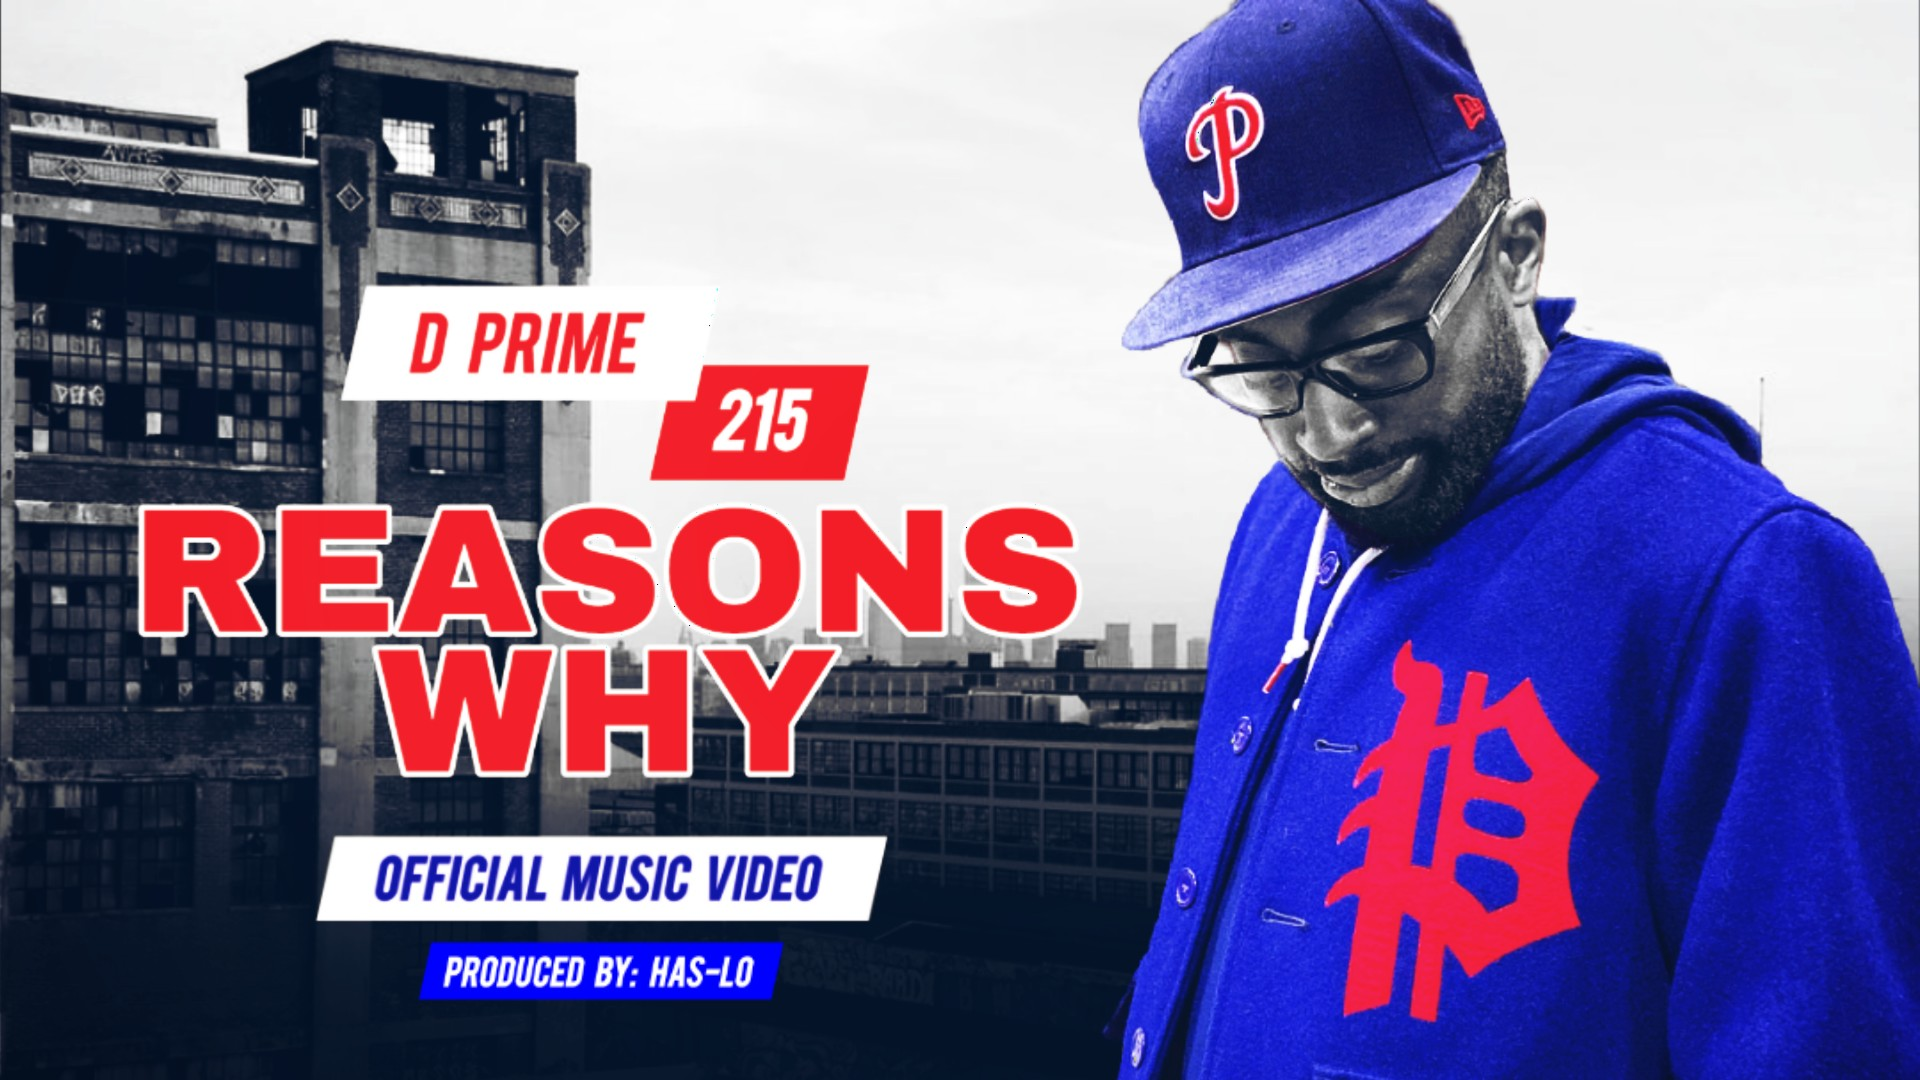 D Prime 215 - Reasons Why Music Video Thumbnail